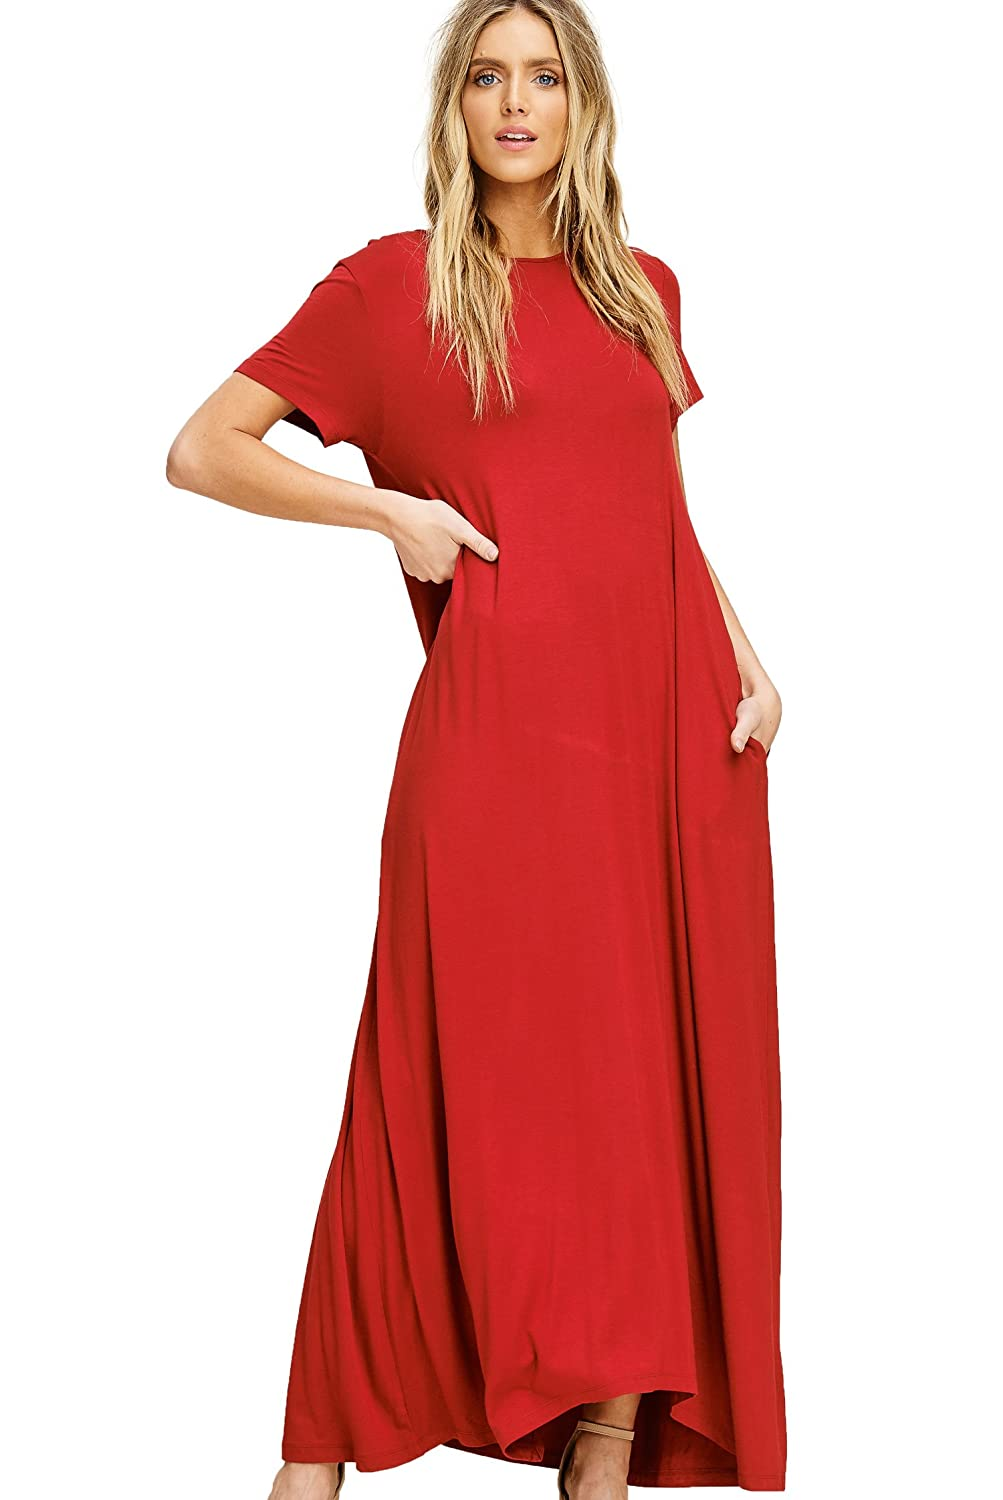 0012cee9001 Annabelle Women s Round Neck Short Sleeve Uneven Hem Casual Jersey Maxi  Dress with Side Pockets at Amazon Women s Clothing store